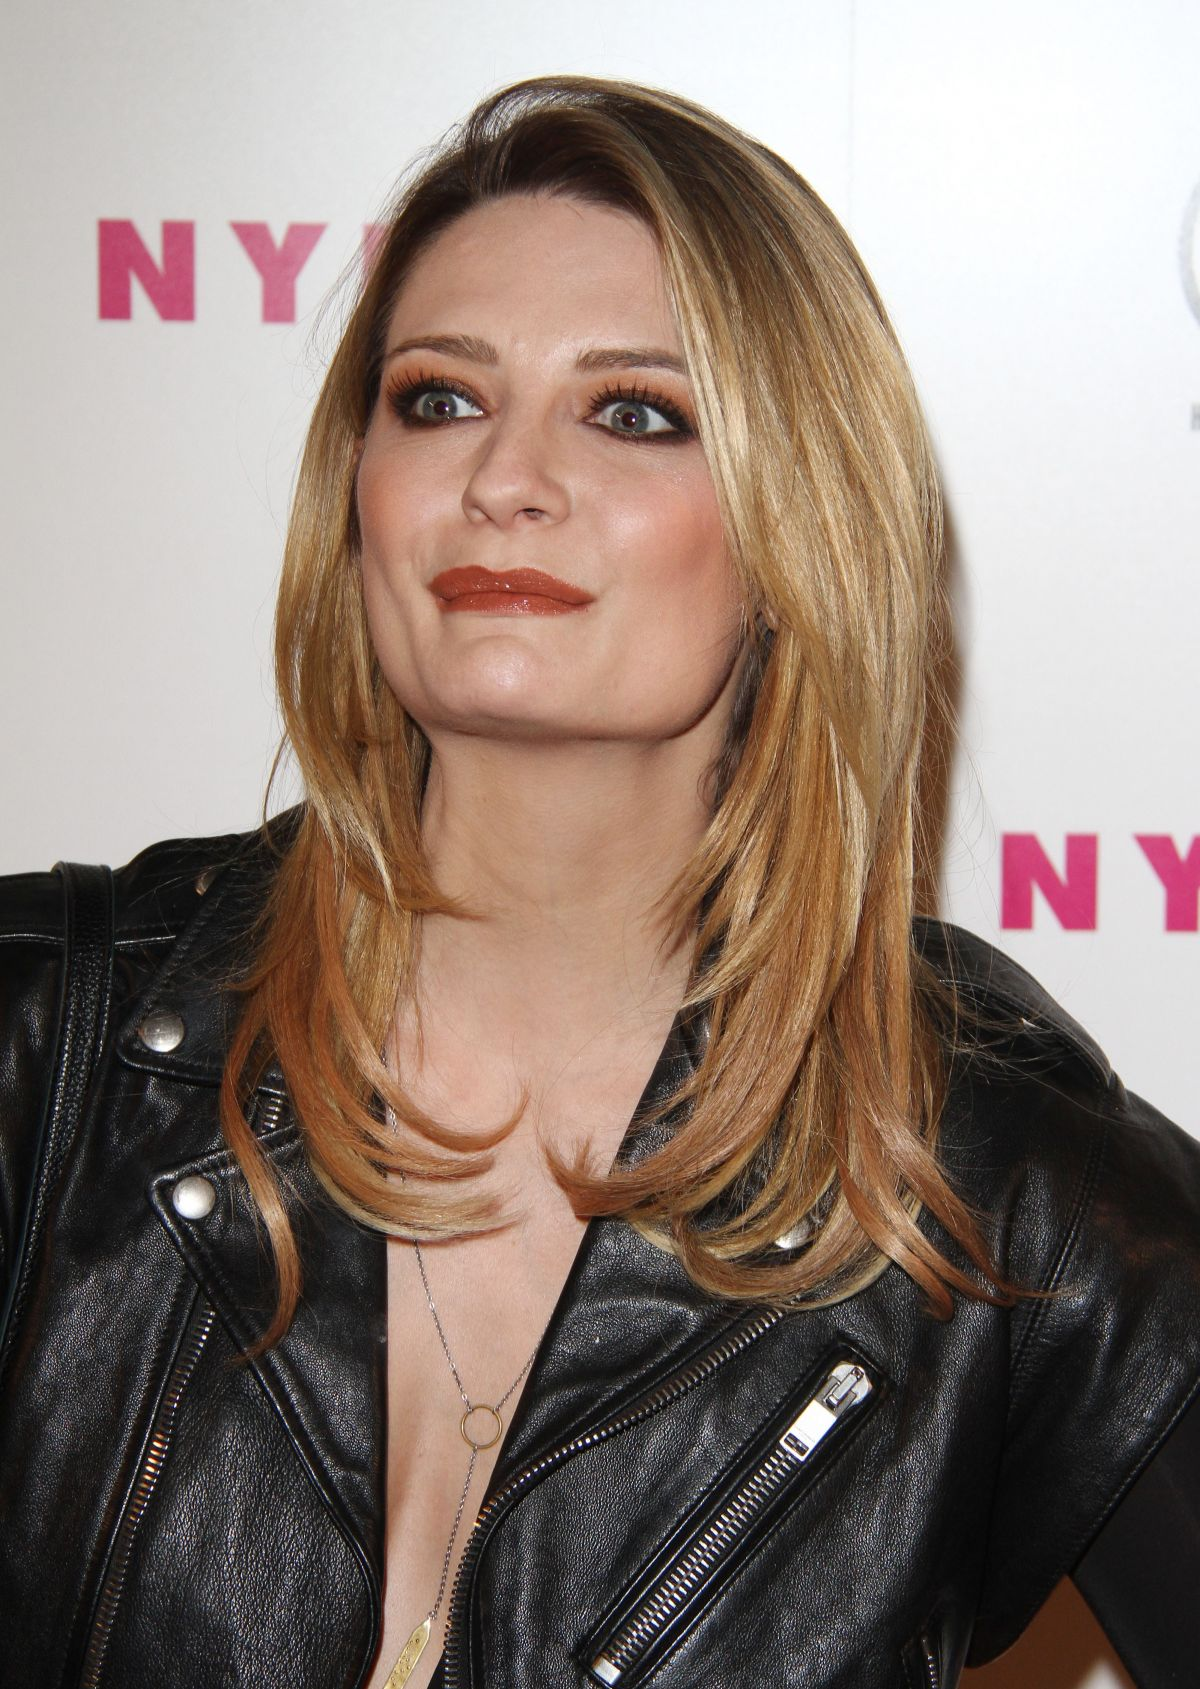 MISCHA BARTON at Nylon Magazine Pre-grammy Party in Hollywood 02/09 ...